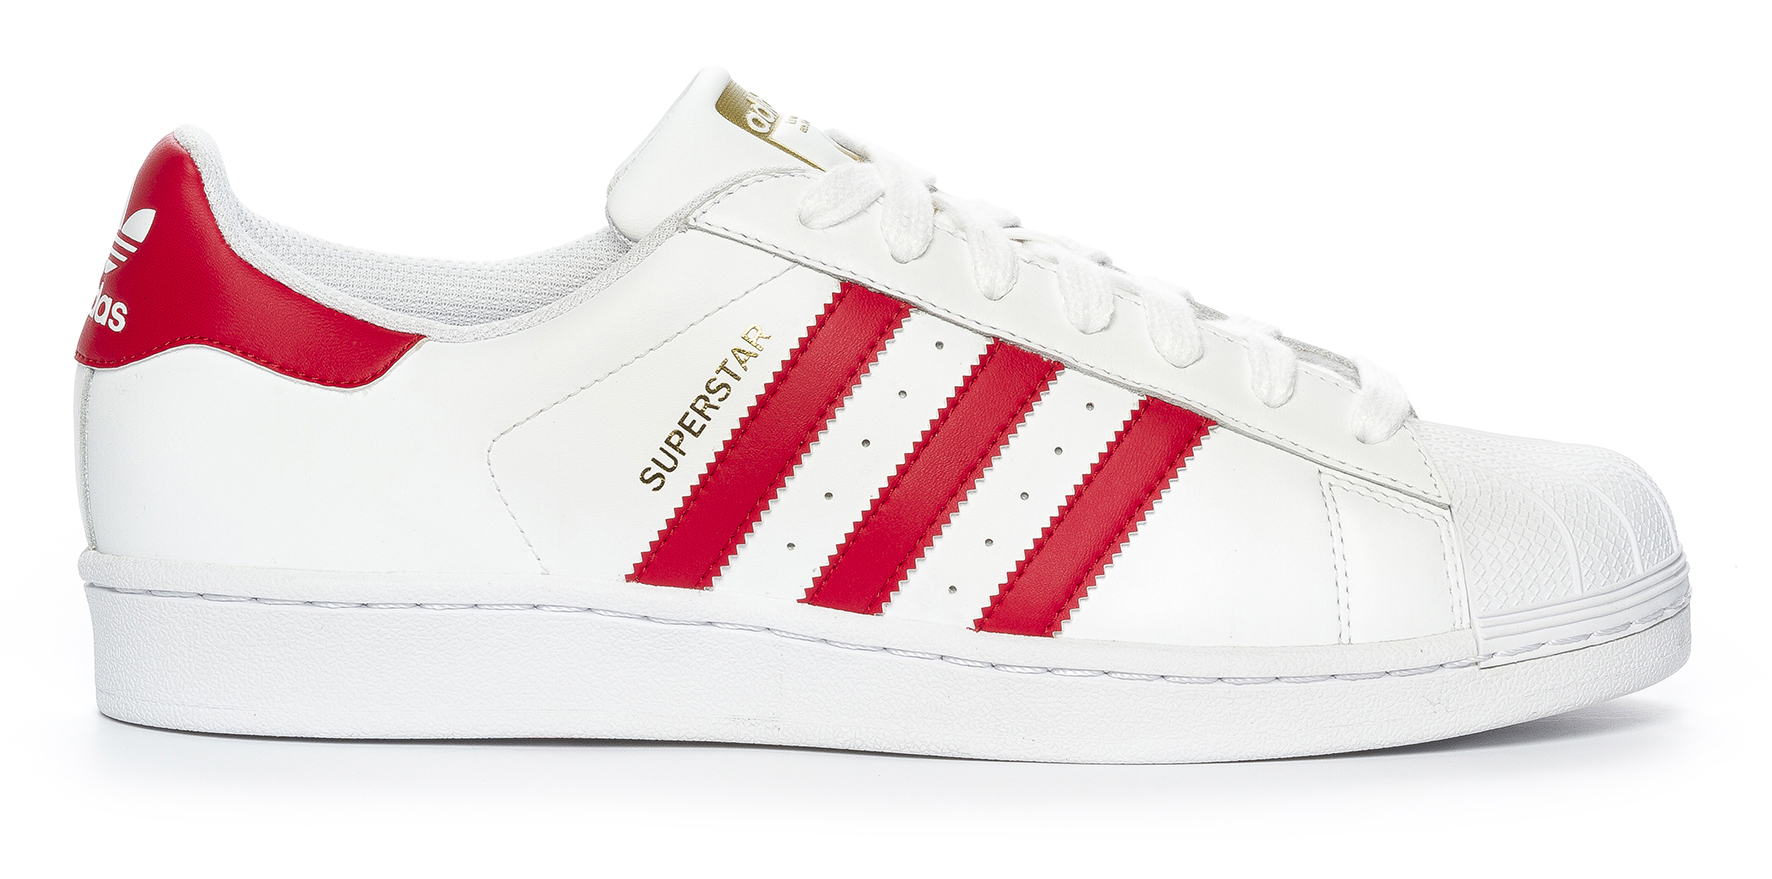 adidas superstar dam röd